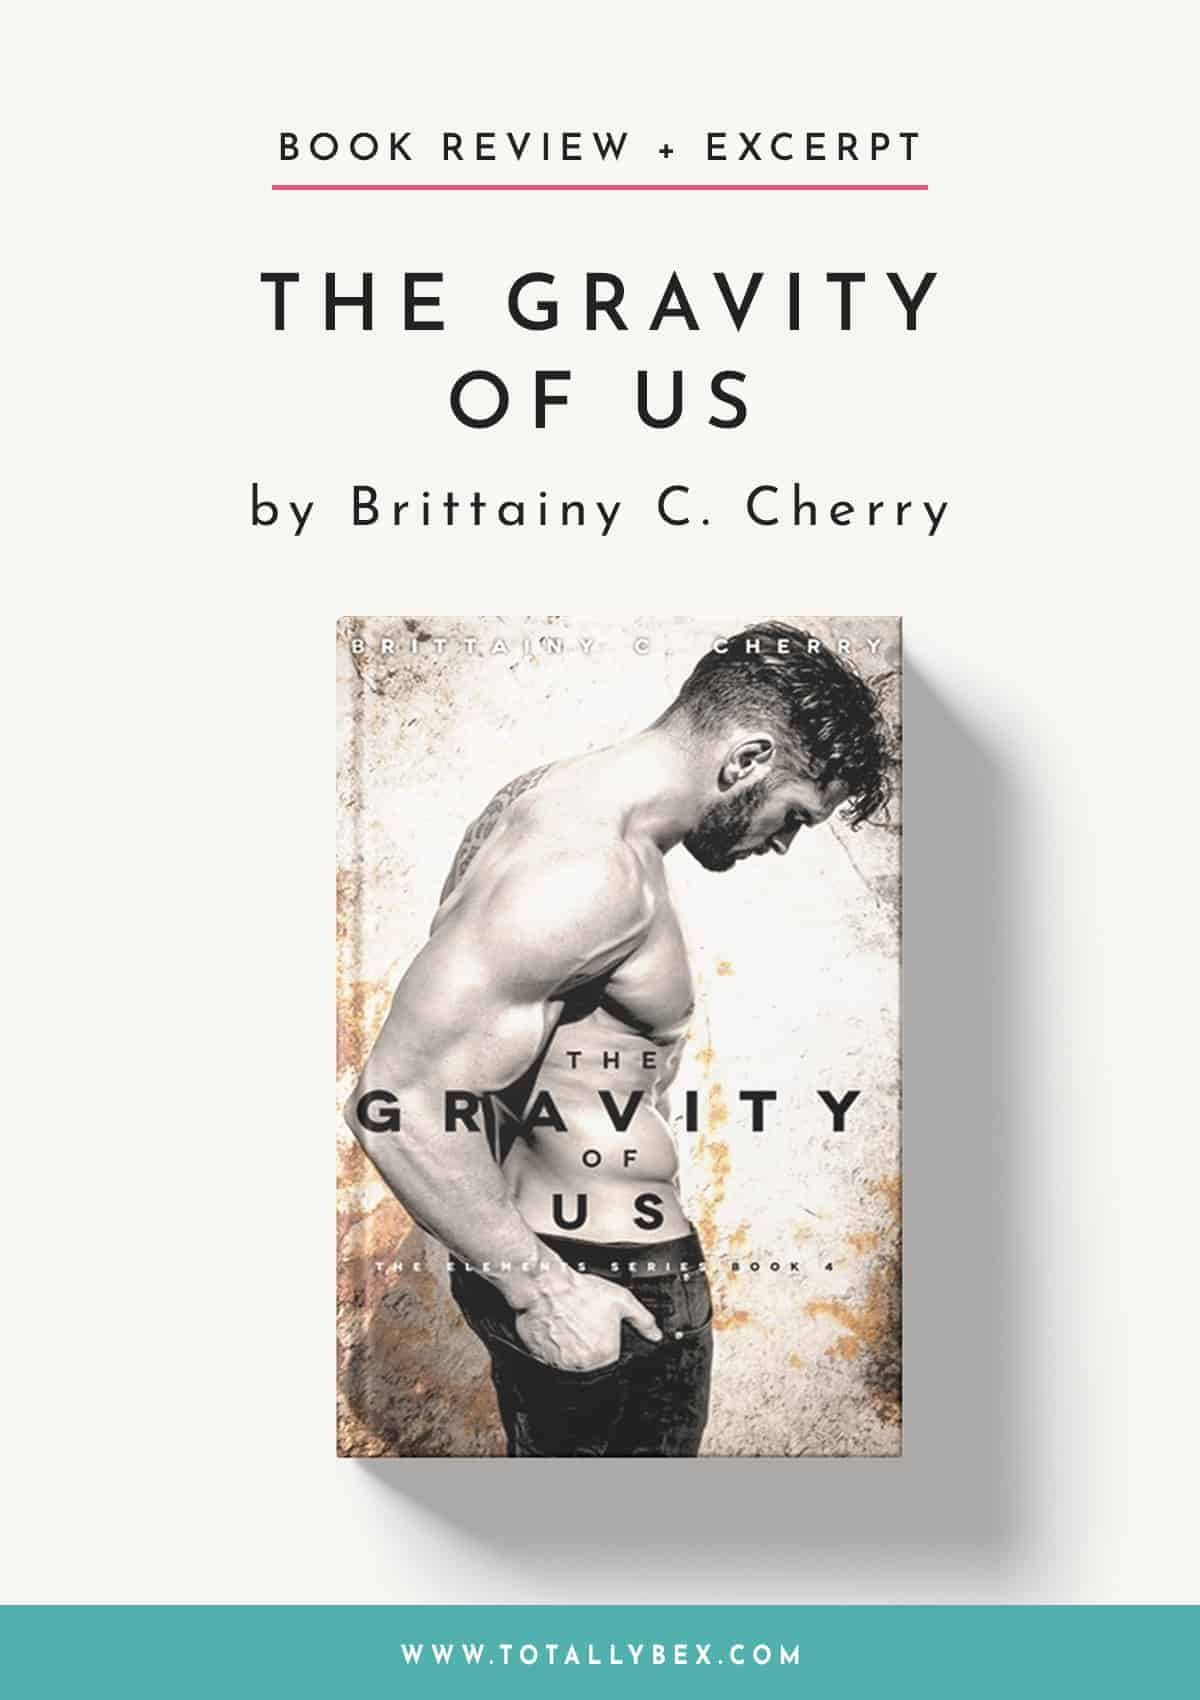 The Gravity of Us by Brittainy C Cherry-Book Review+Excerpt